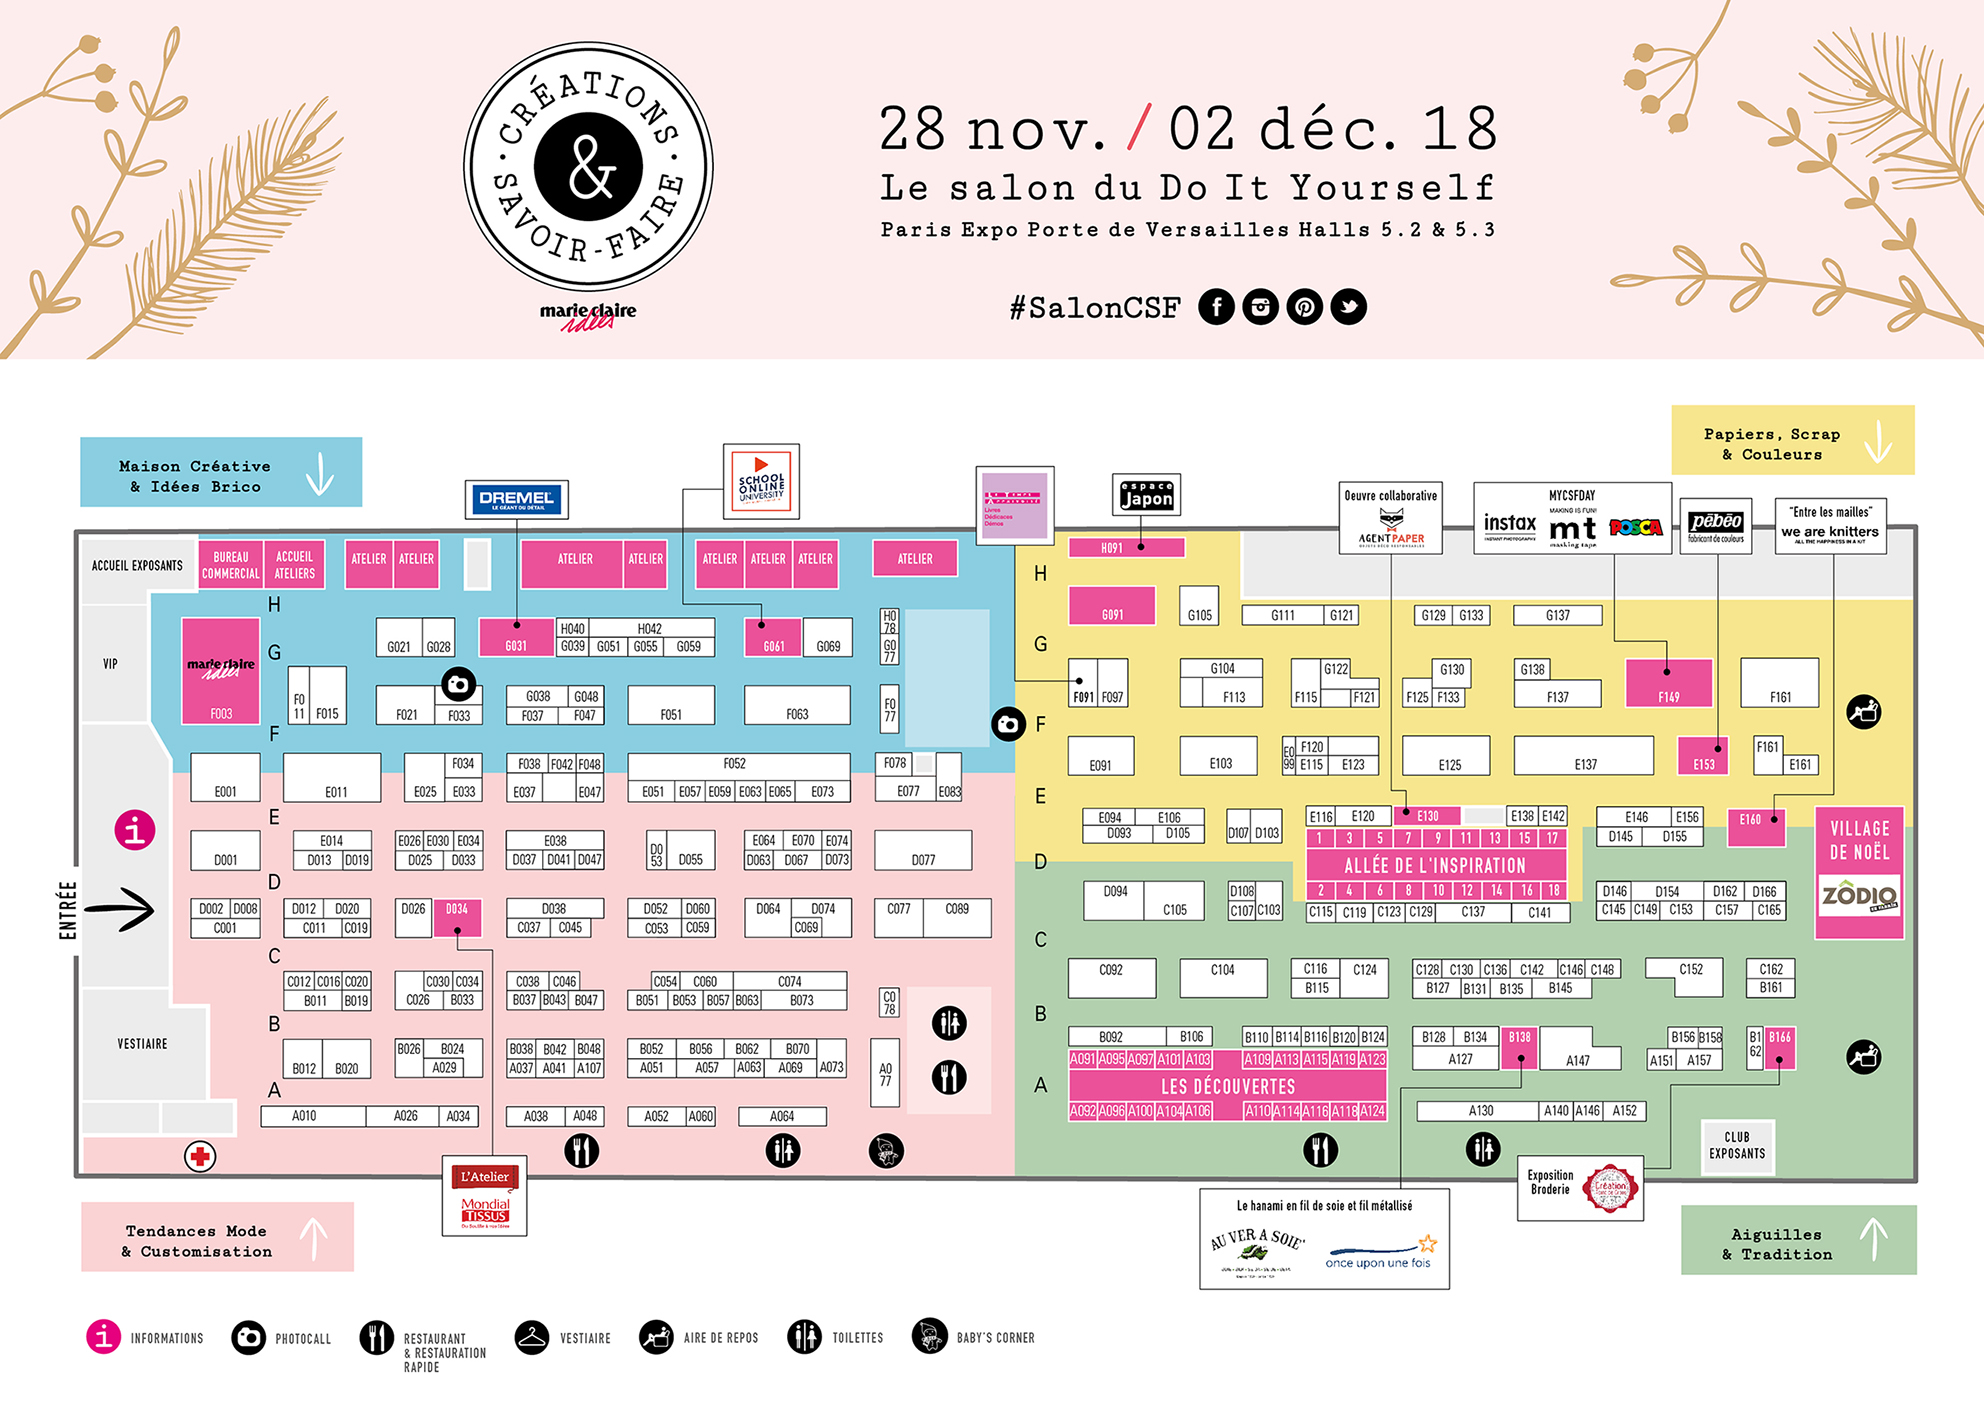 Plan du salon CSF 2018